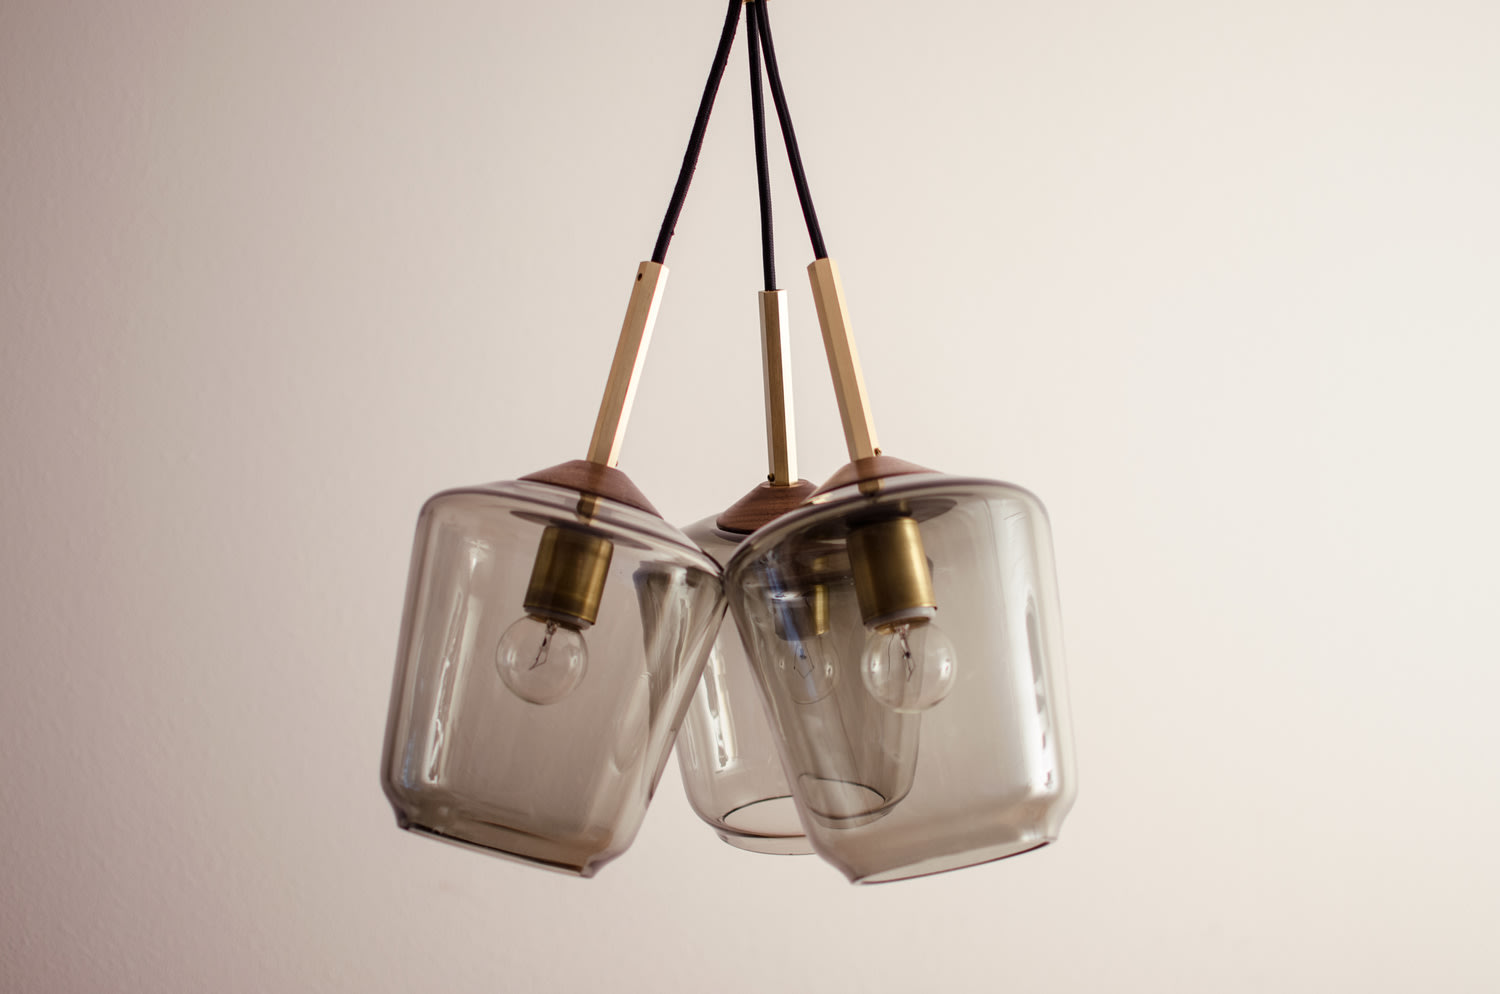 Pendants by Studio Palanquin seen at QUITOKEETO, San Francisco - Wilkens Pendant Lamp